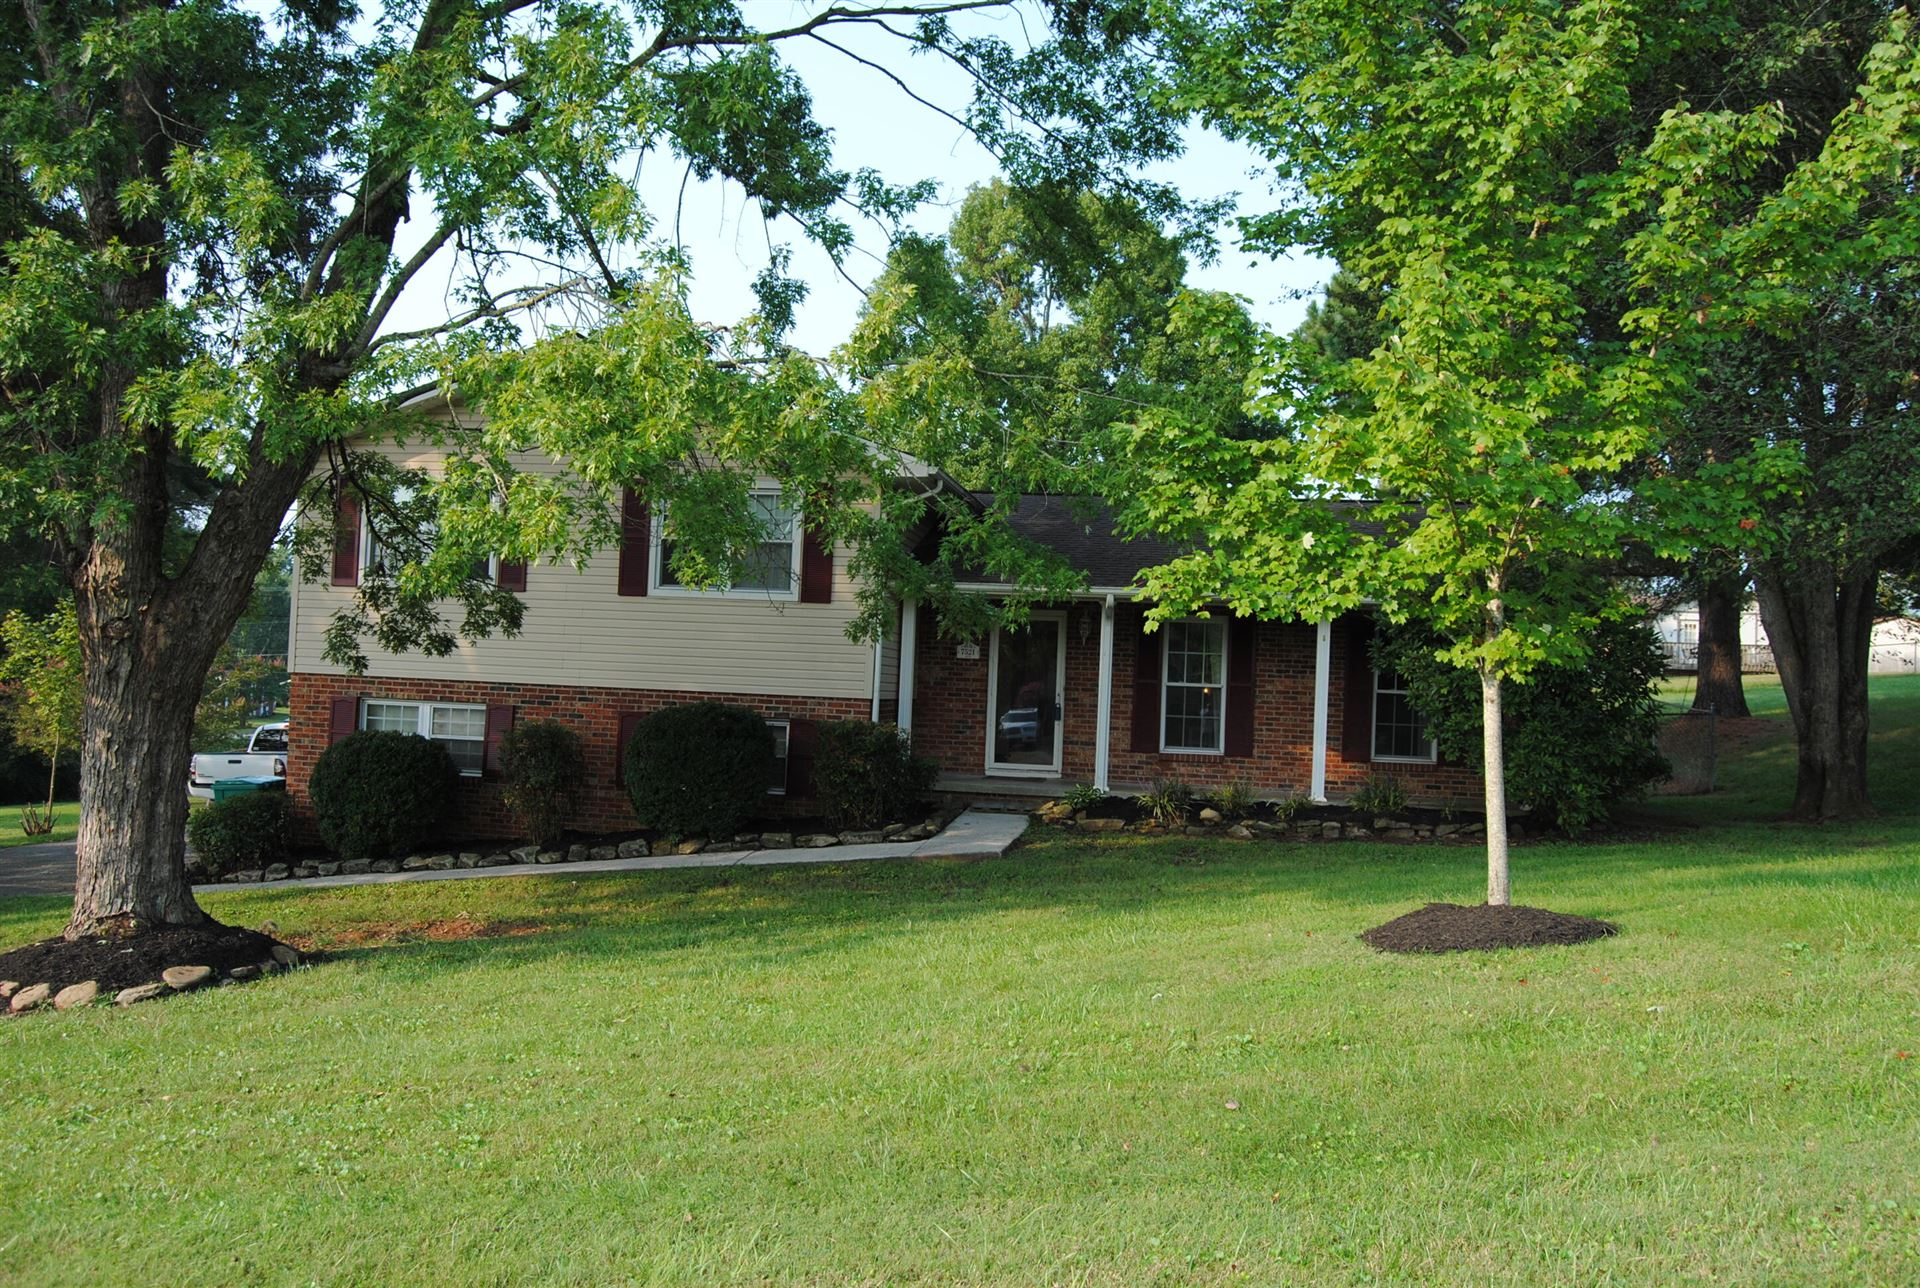 Photo of 7521 Popen Drive #2, Knoxville, TN 37938 (MLS # 1167315)